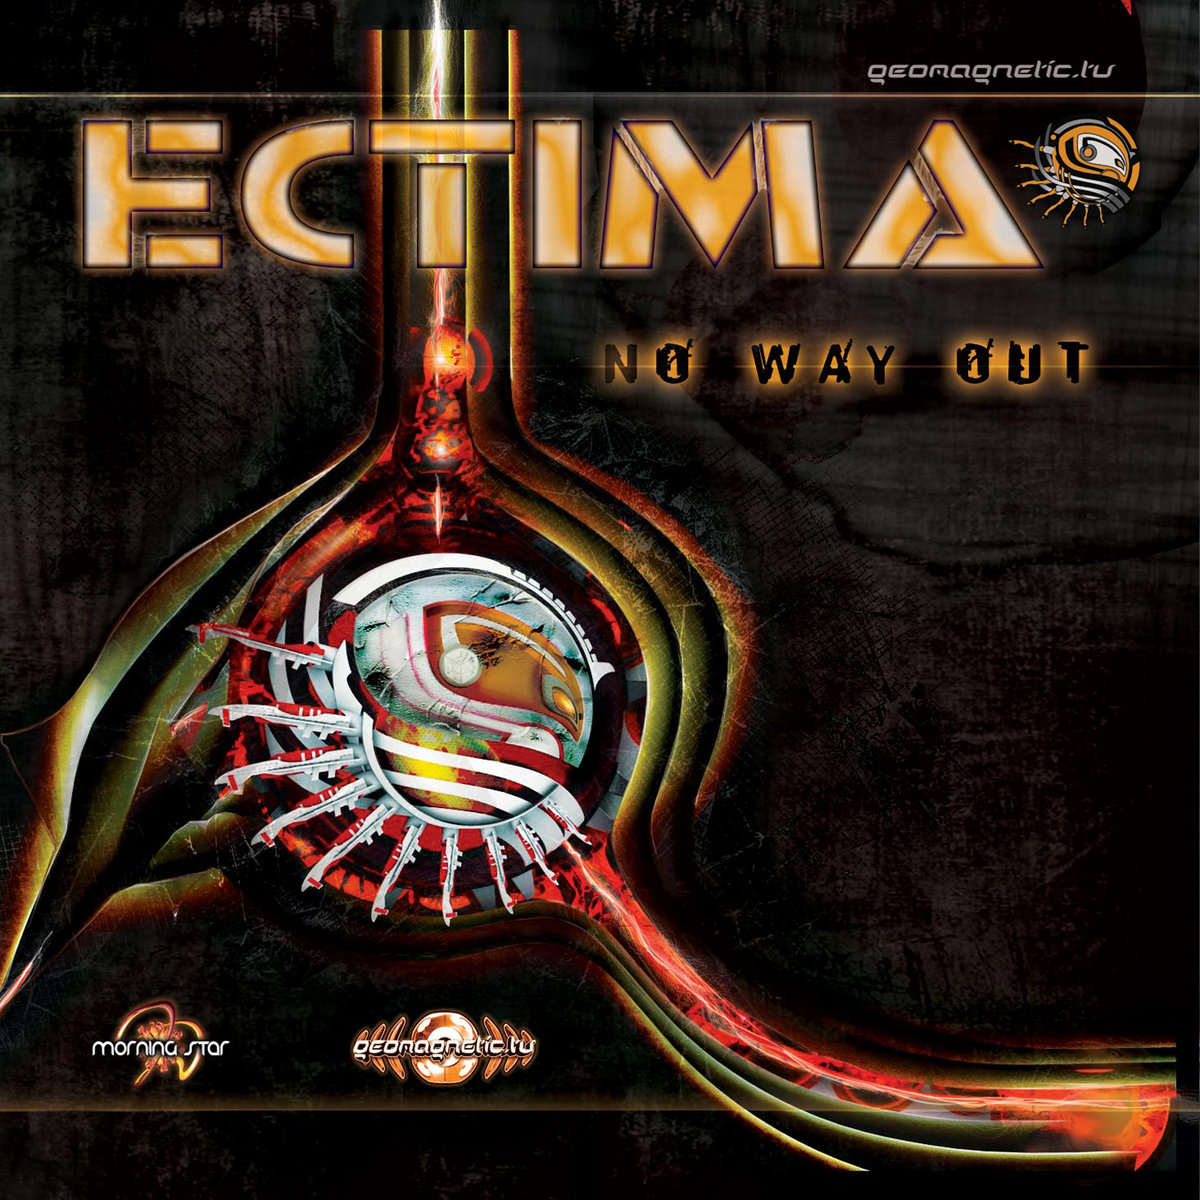 Talpa - Sleeping Beauty (Ectima Remix) @ 'No Way Out' album (electronic, goa)